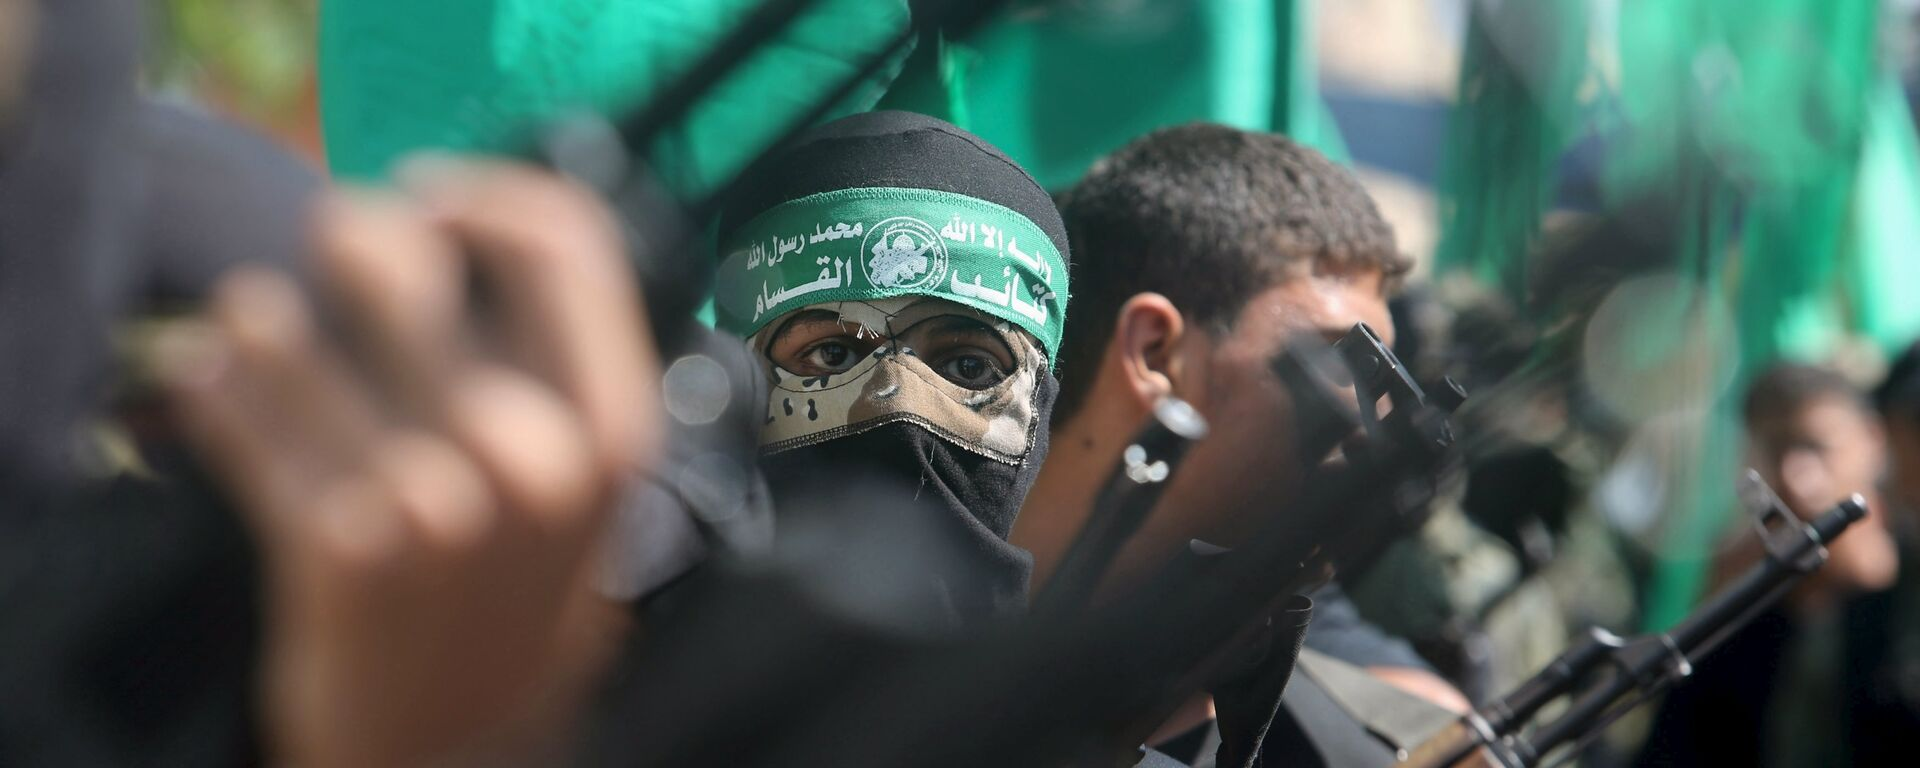 Palestinian Hamas militants take part in a protest against the Israeli police raid on Jerusalem's al-Aqsa mosque on Tuesday, in Khan Younis in the southern Gaza Strip, September 18, 2015. - Sputnik Mundo, 1920, 08.07.2021